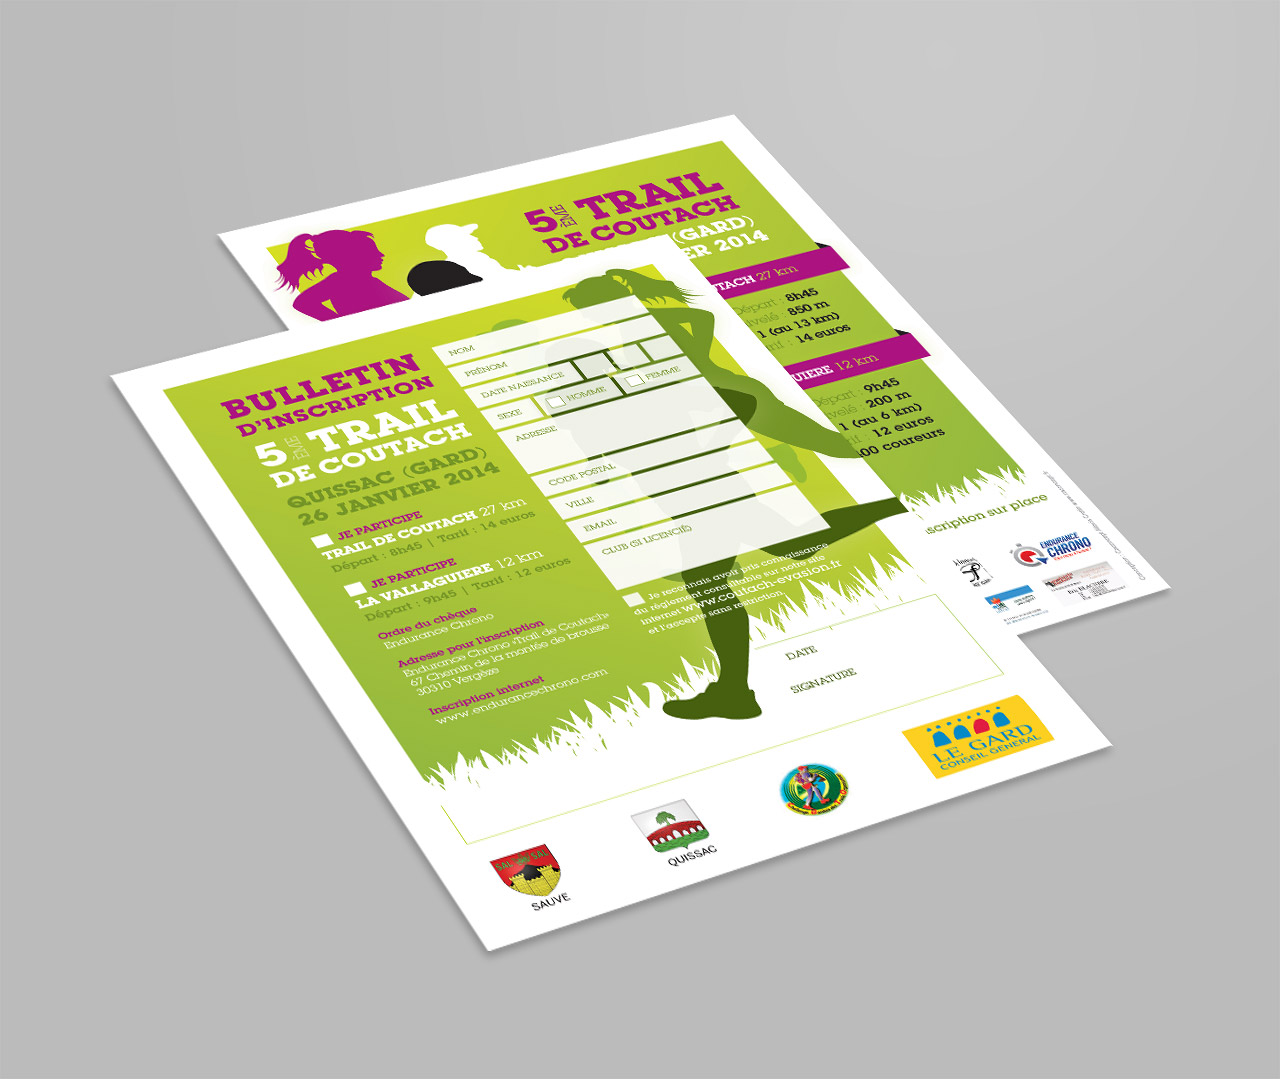 trail-de-coutach-flyer-creation-communication-caconcept-alexis-cretin-graphiste